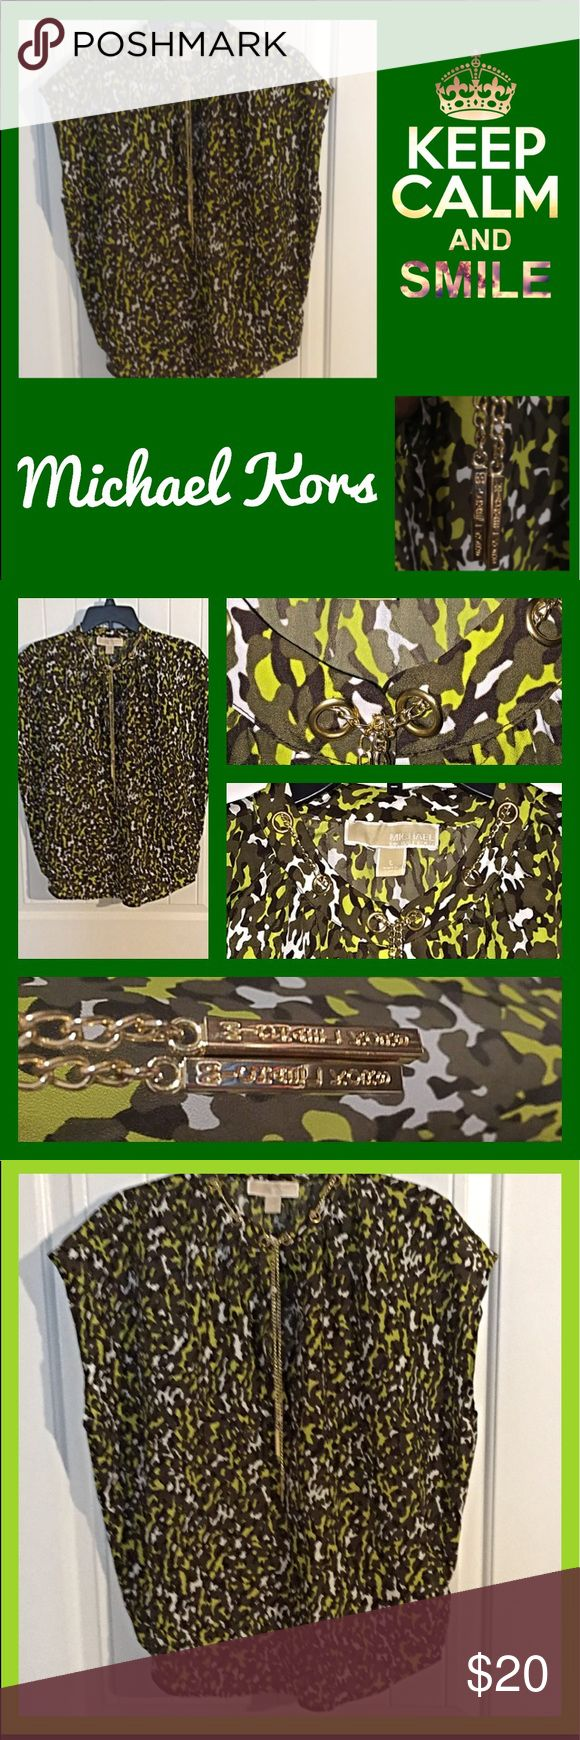 EUC Michael Kors Camo Print Chain Link Collar This beautiful top is so trendy with camouflage print and Michael Kors signature gold chain wrapping thur neckline grommets into a necklace. KORS Michael Kors Tops